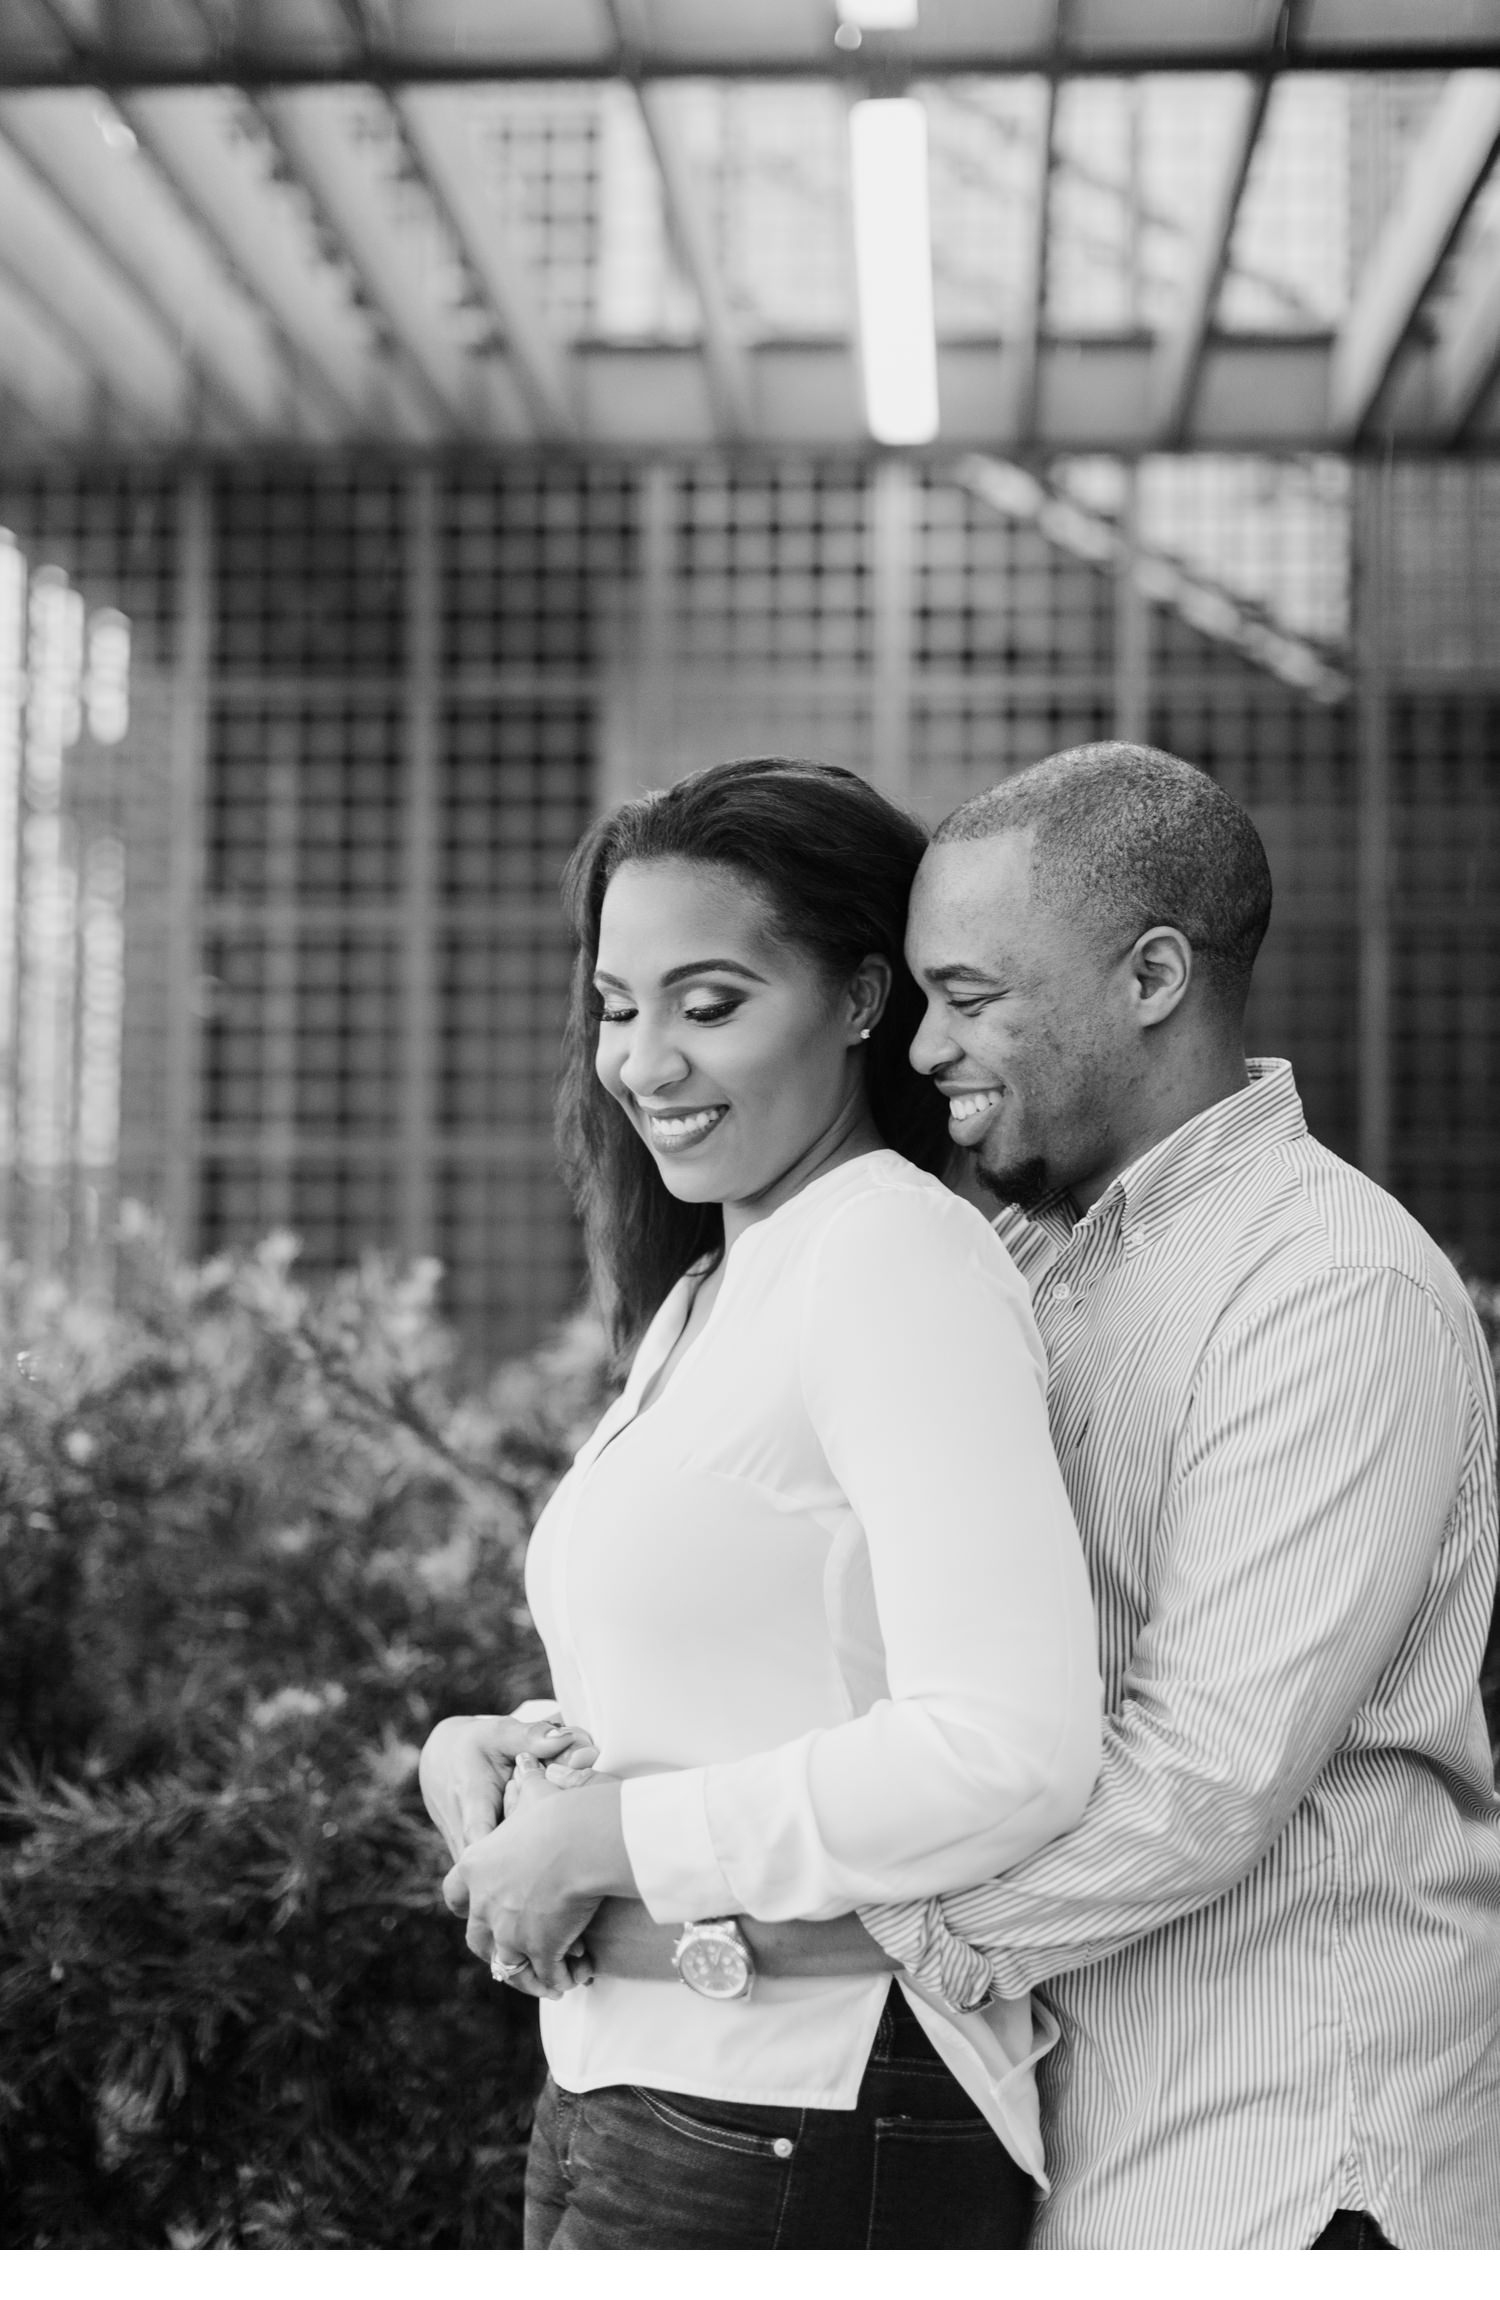 armature-works-engagement-session-tracy-and-randall-7.jpg